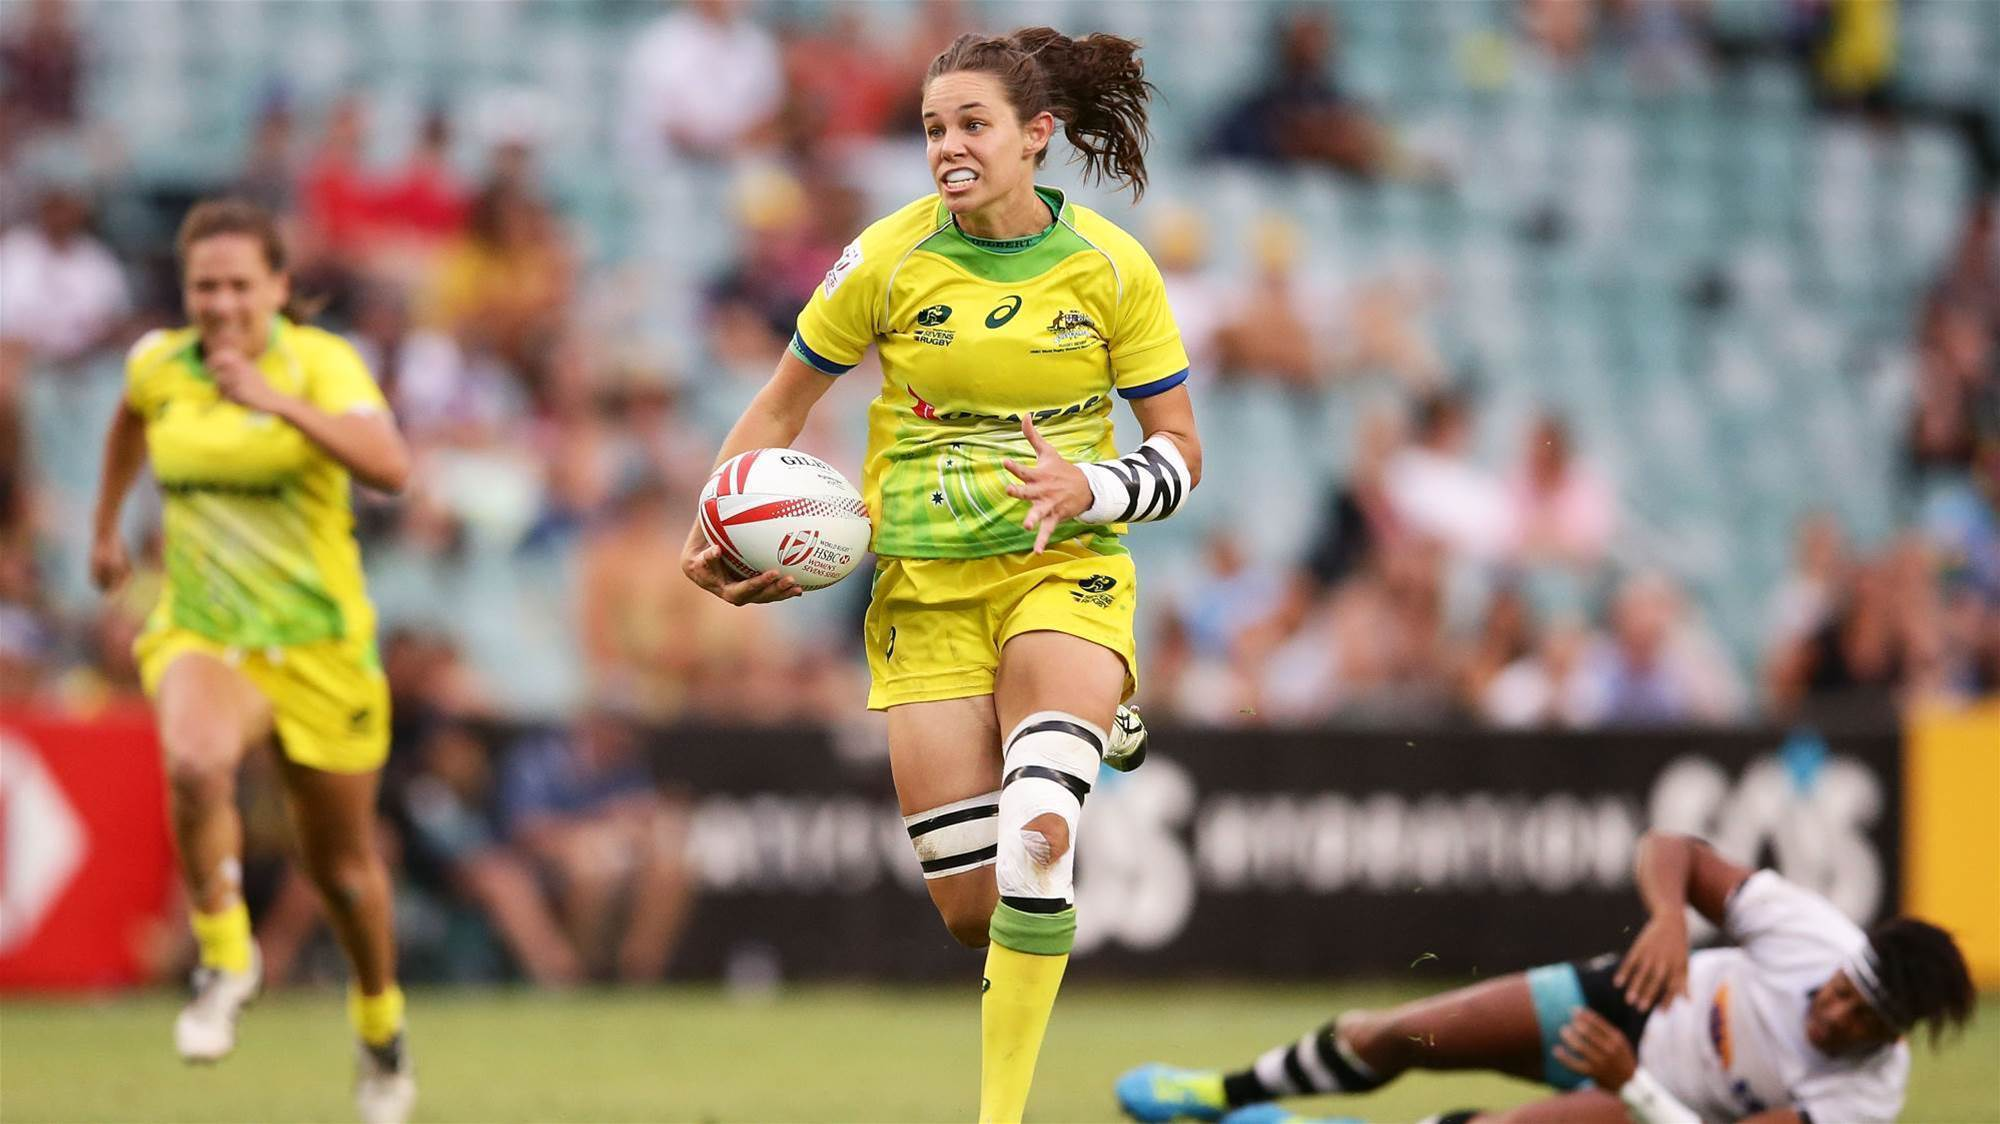 Carlton sign former Aussie 7s pair